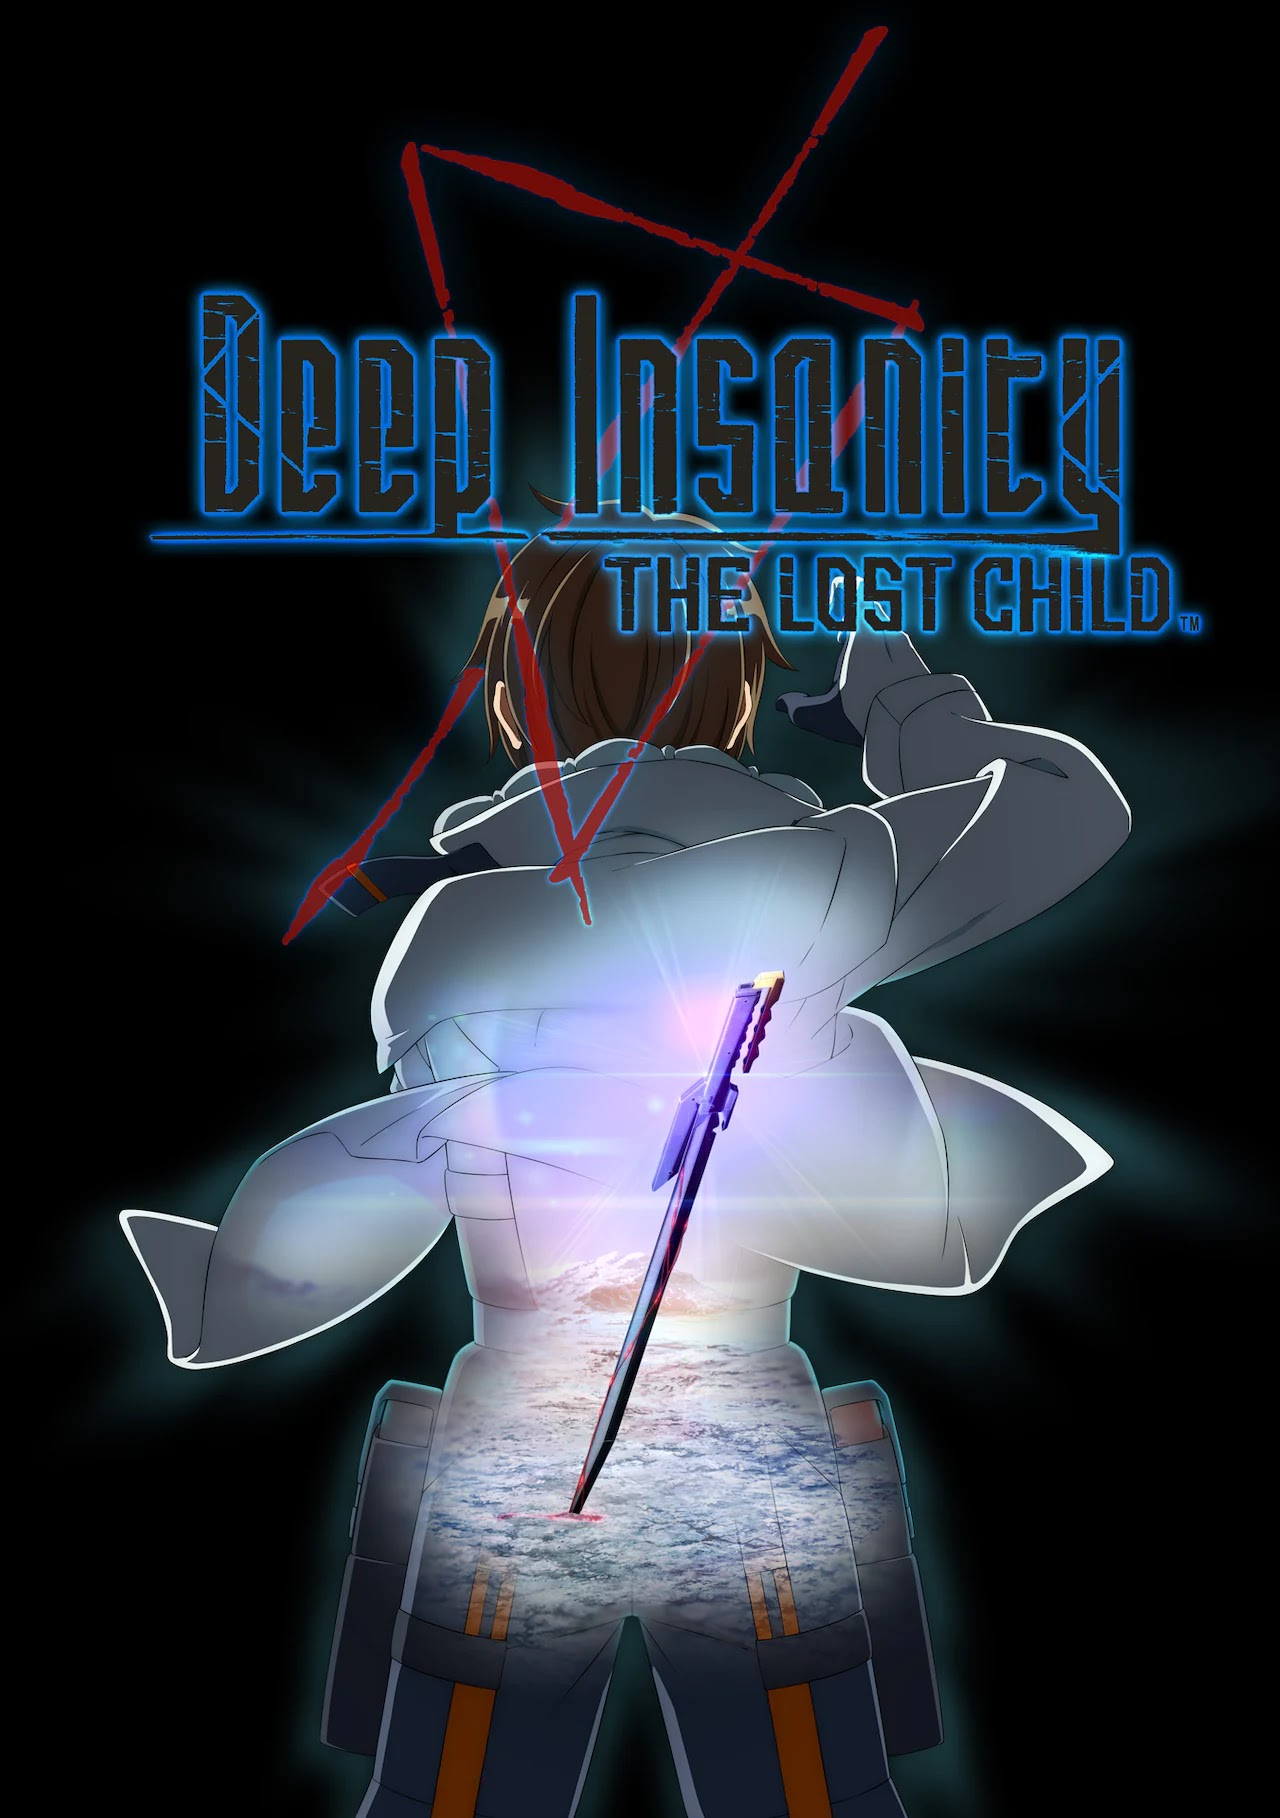 Deep_Insanity_The_Lost_Child-cover.jpg